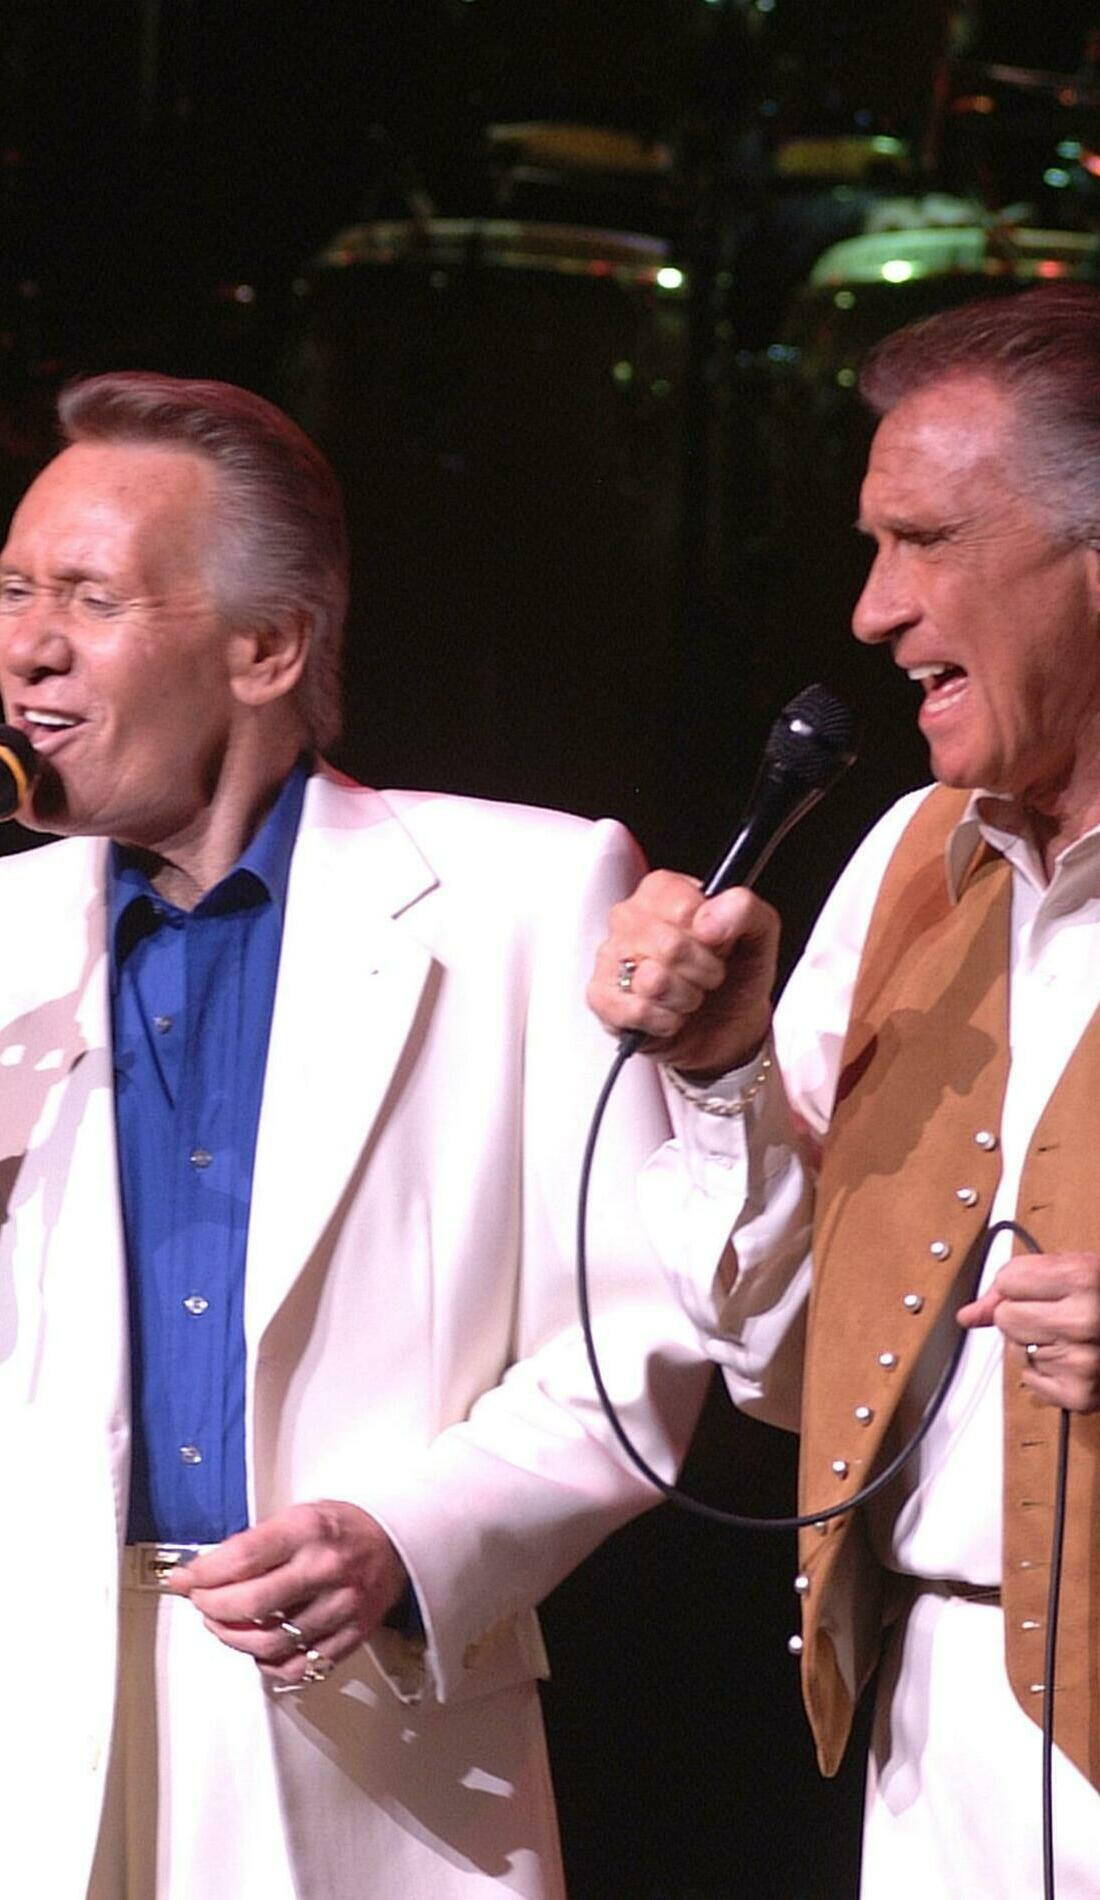 A The Righteous Brothers live event